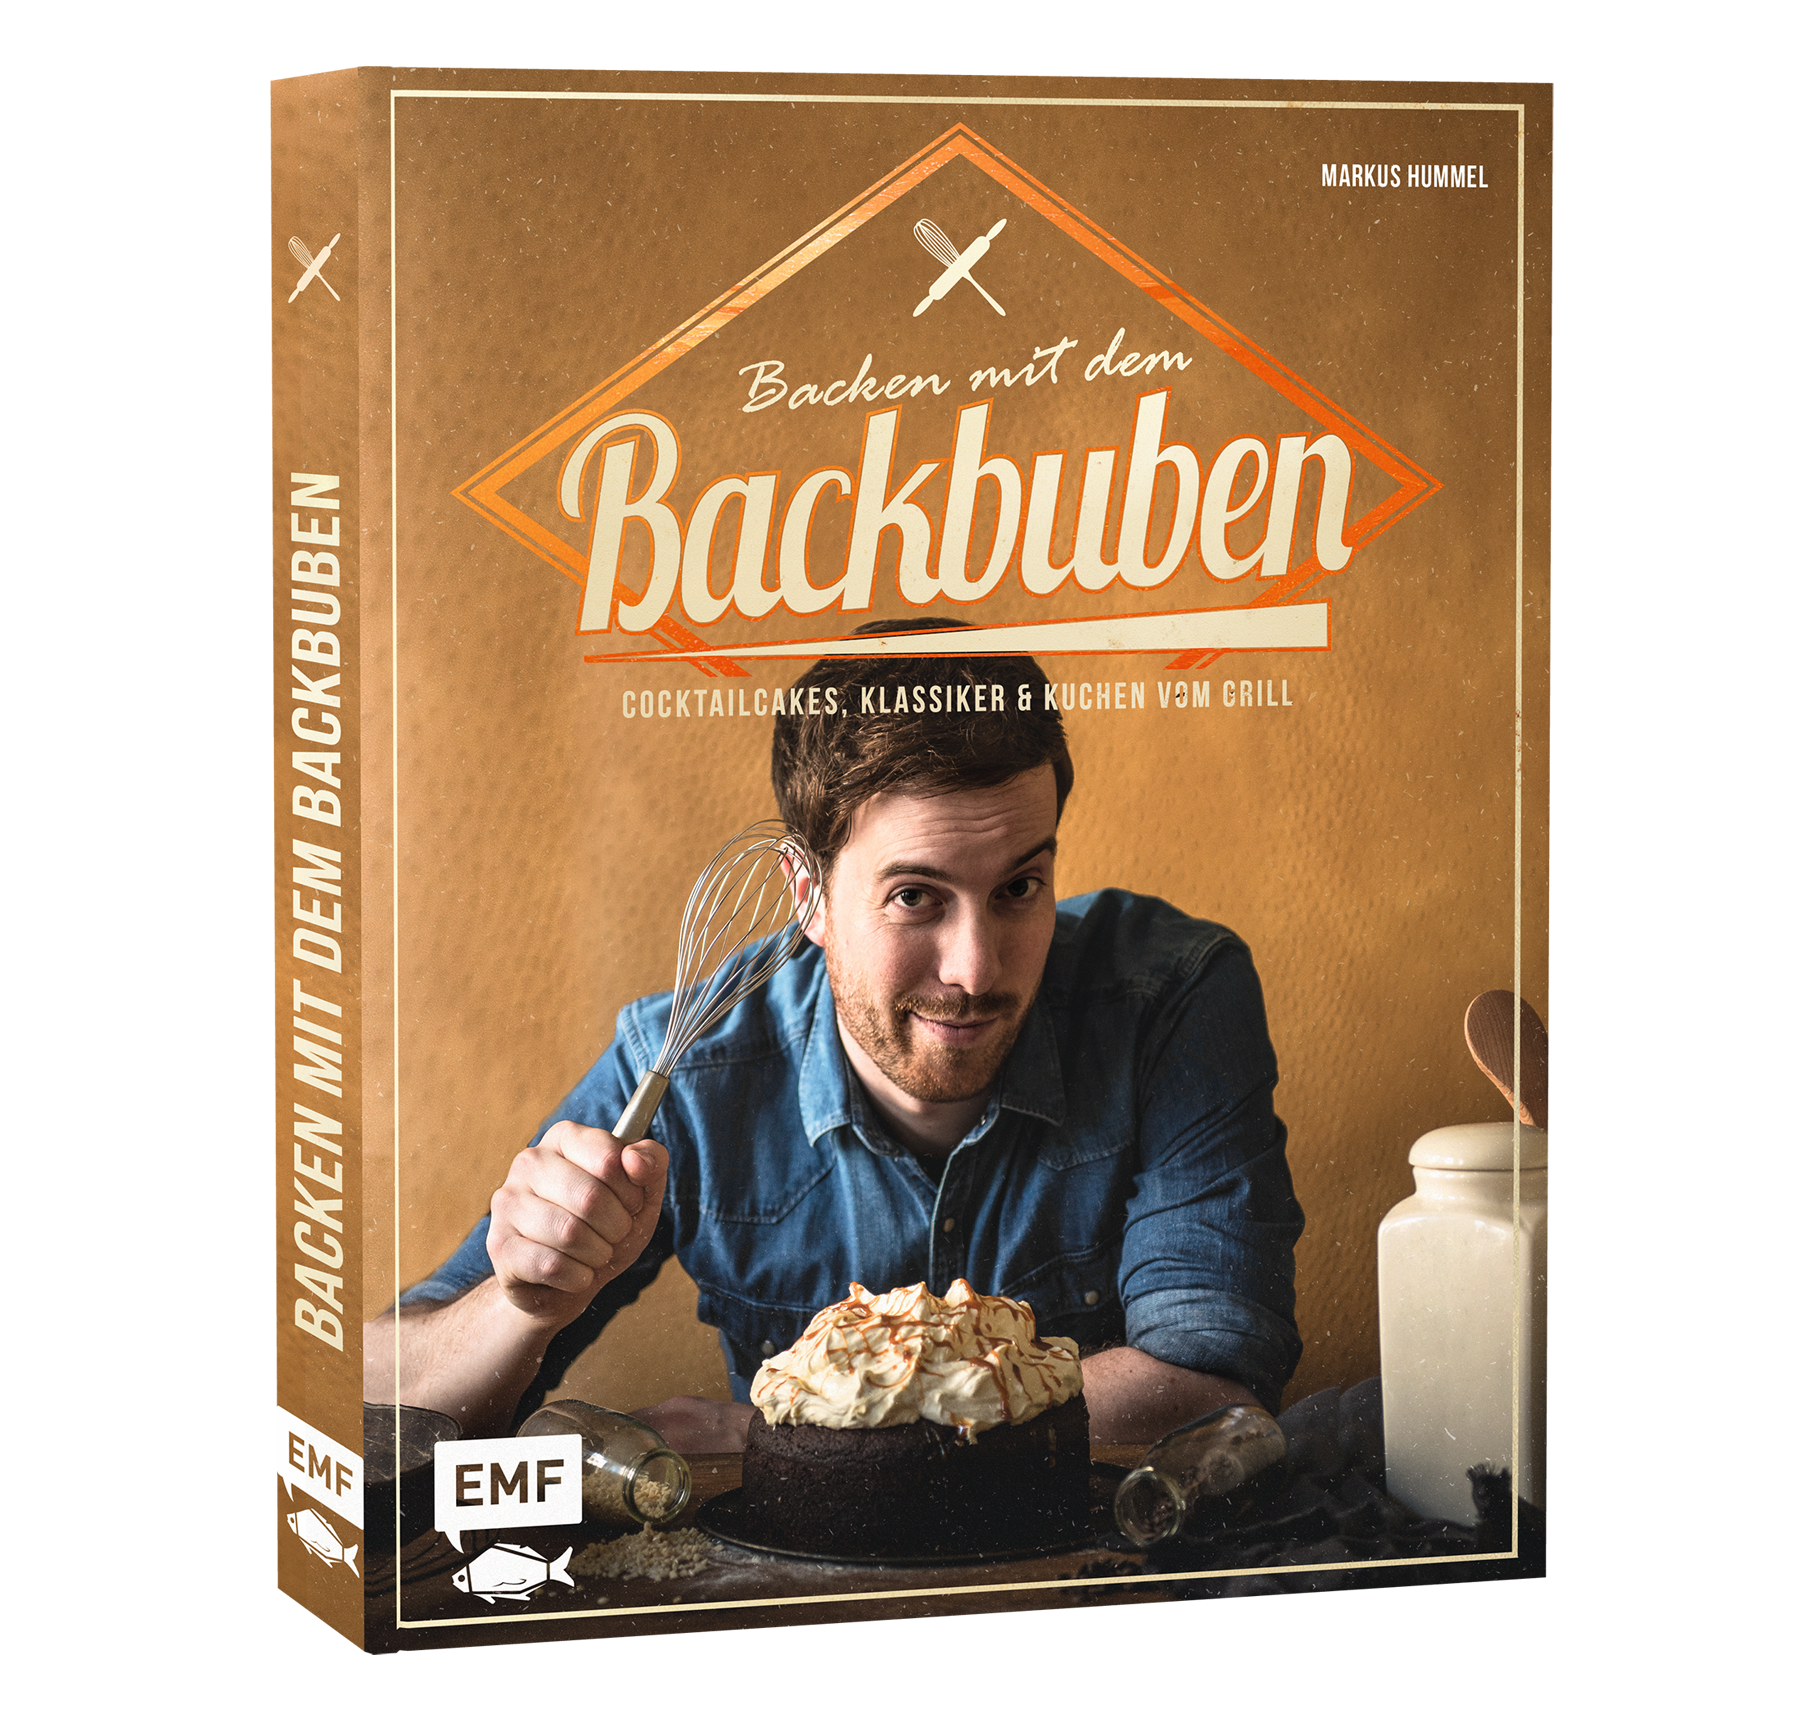 Der Backbube Backen mit dem Backbuben